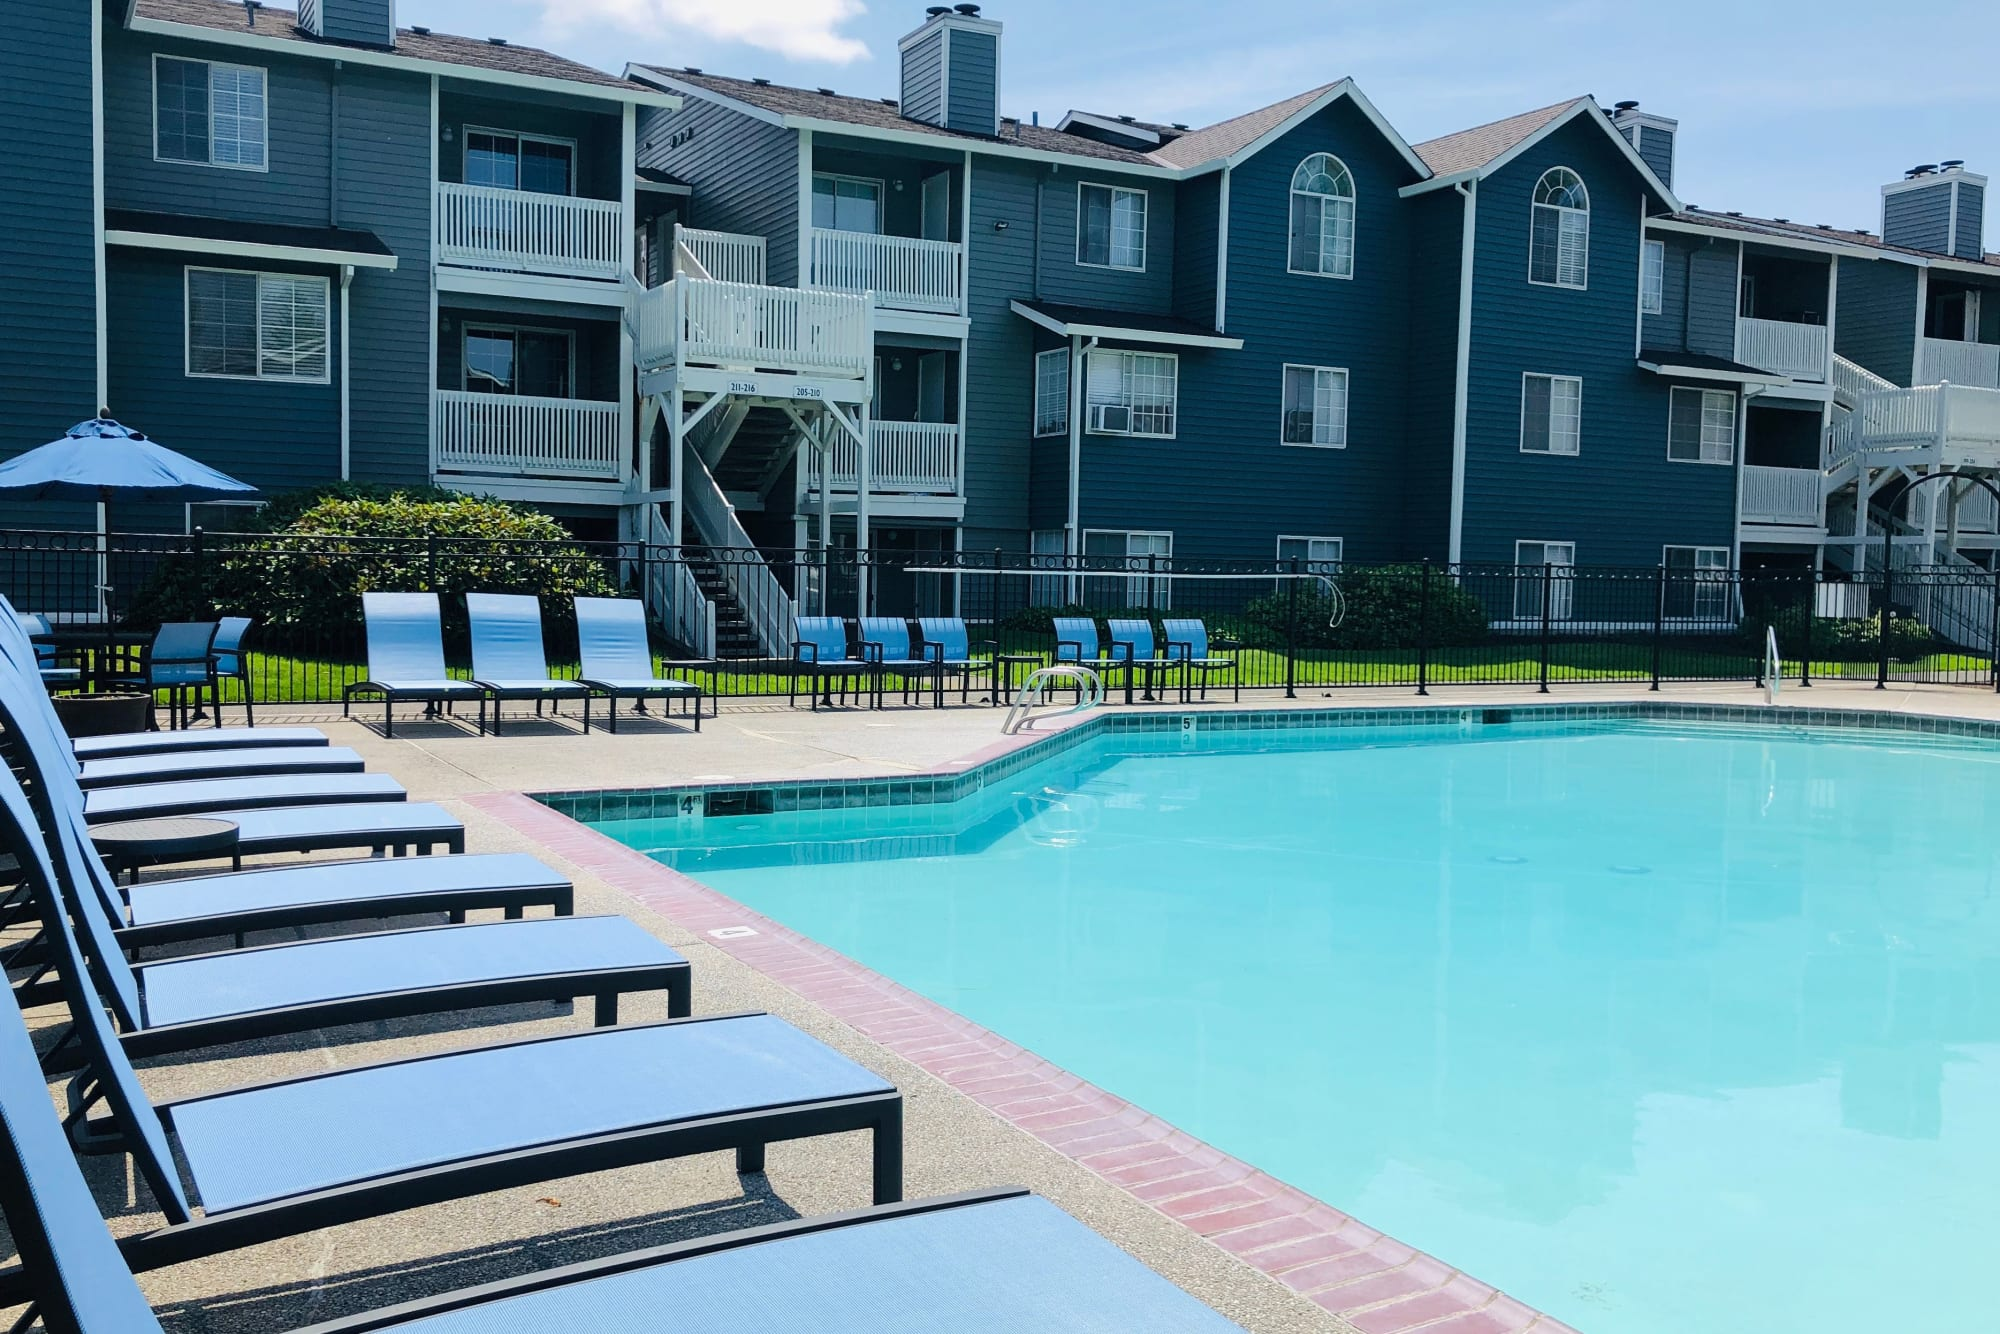 Sparkling Pool with new lounge chairs at Walnut Grove Landing Apartments in Vancouver, WA